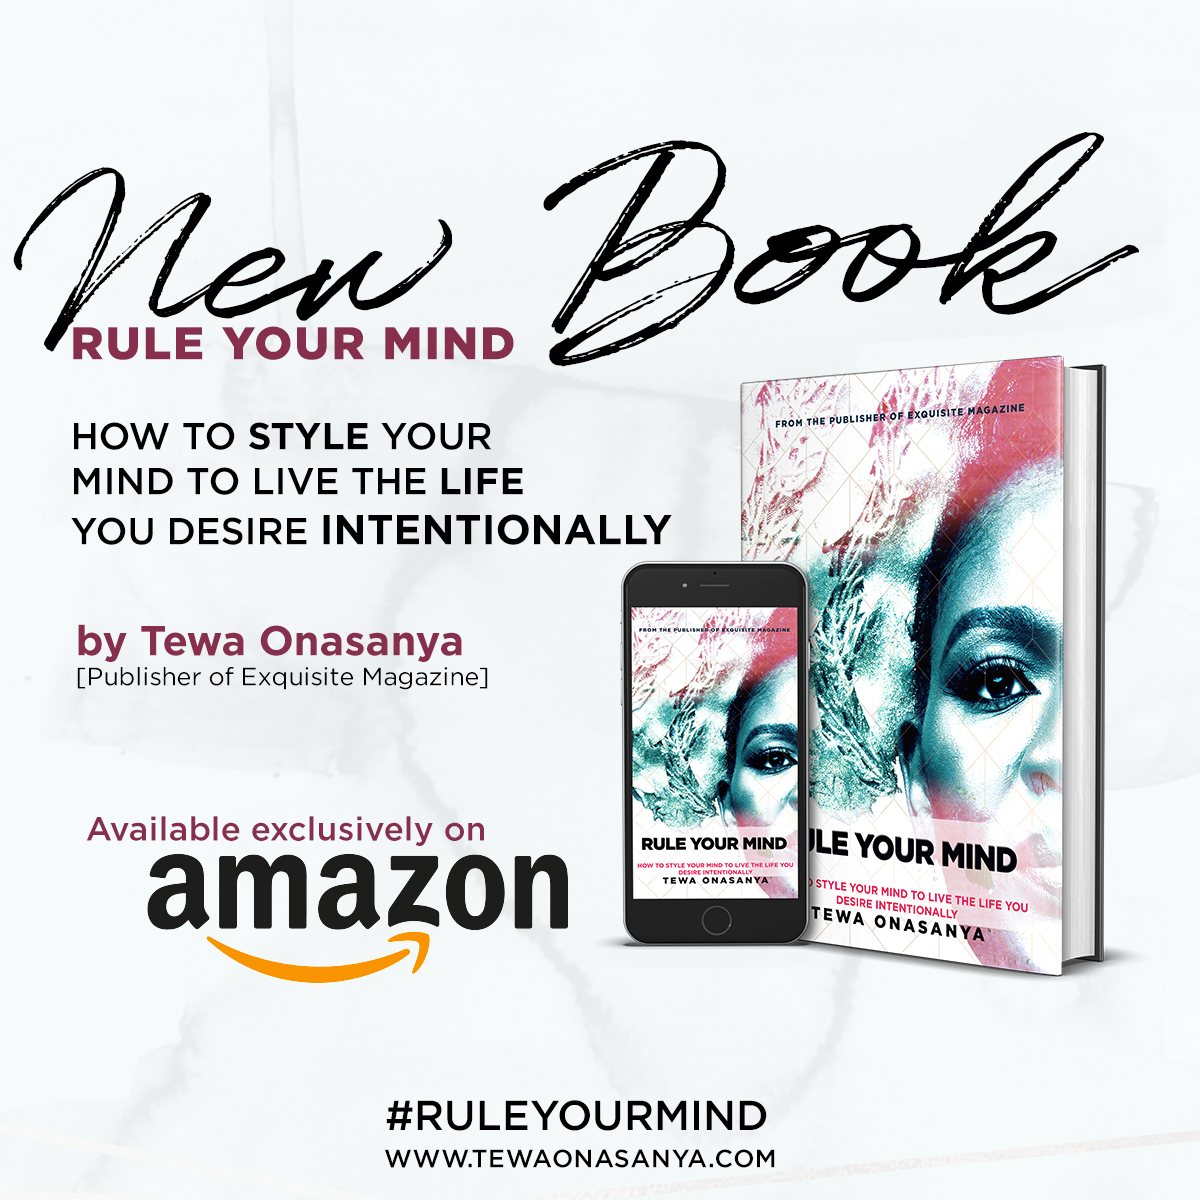 Tewa onasanya- Rule your mind book